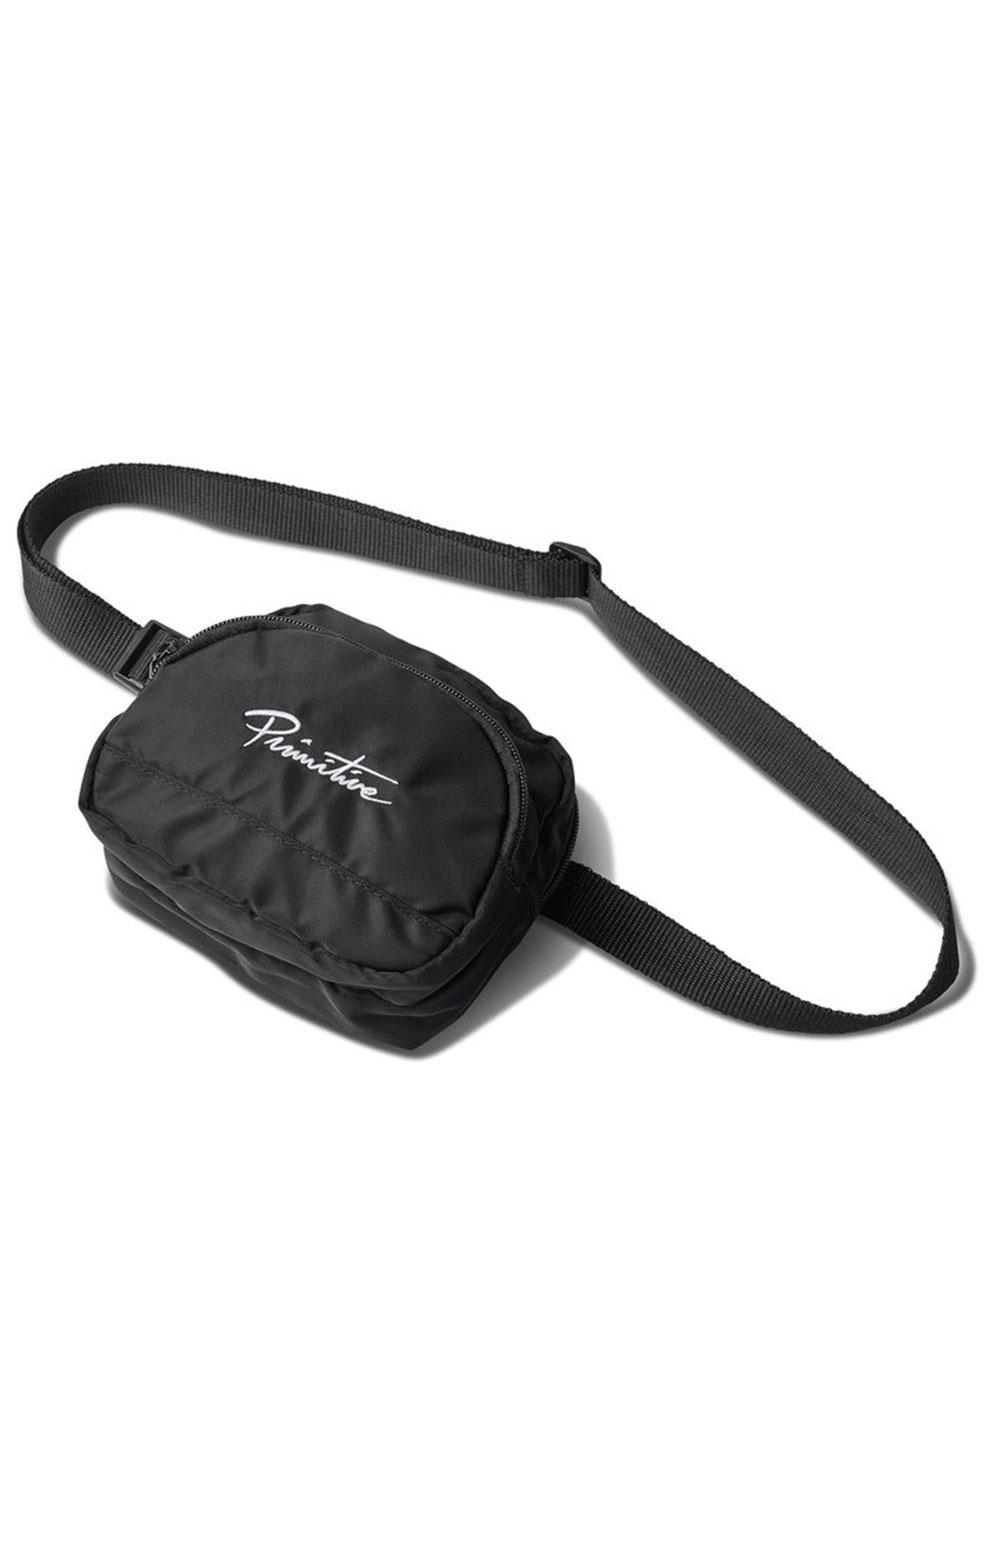 Nuevo Shoulder Bag - Black